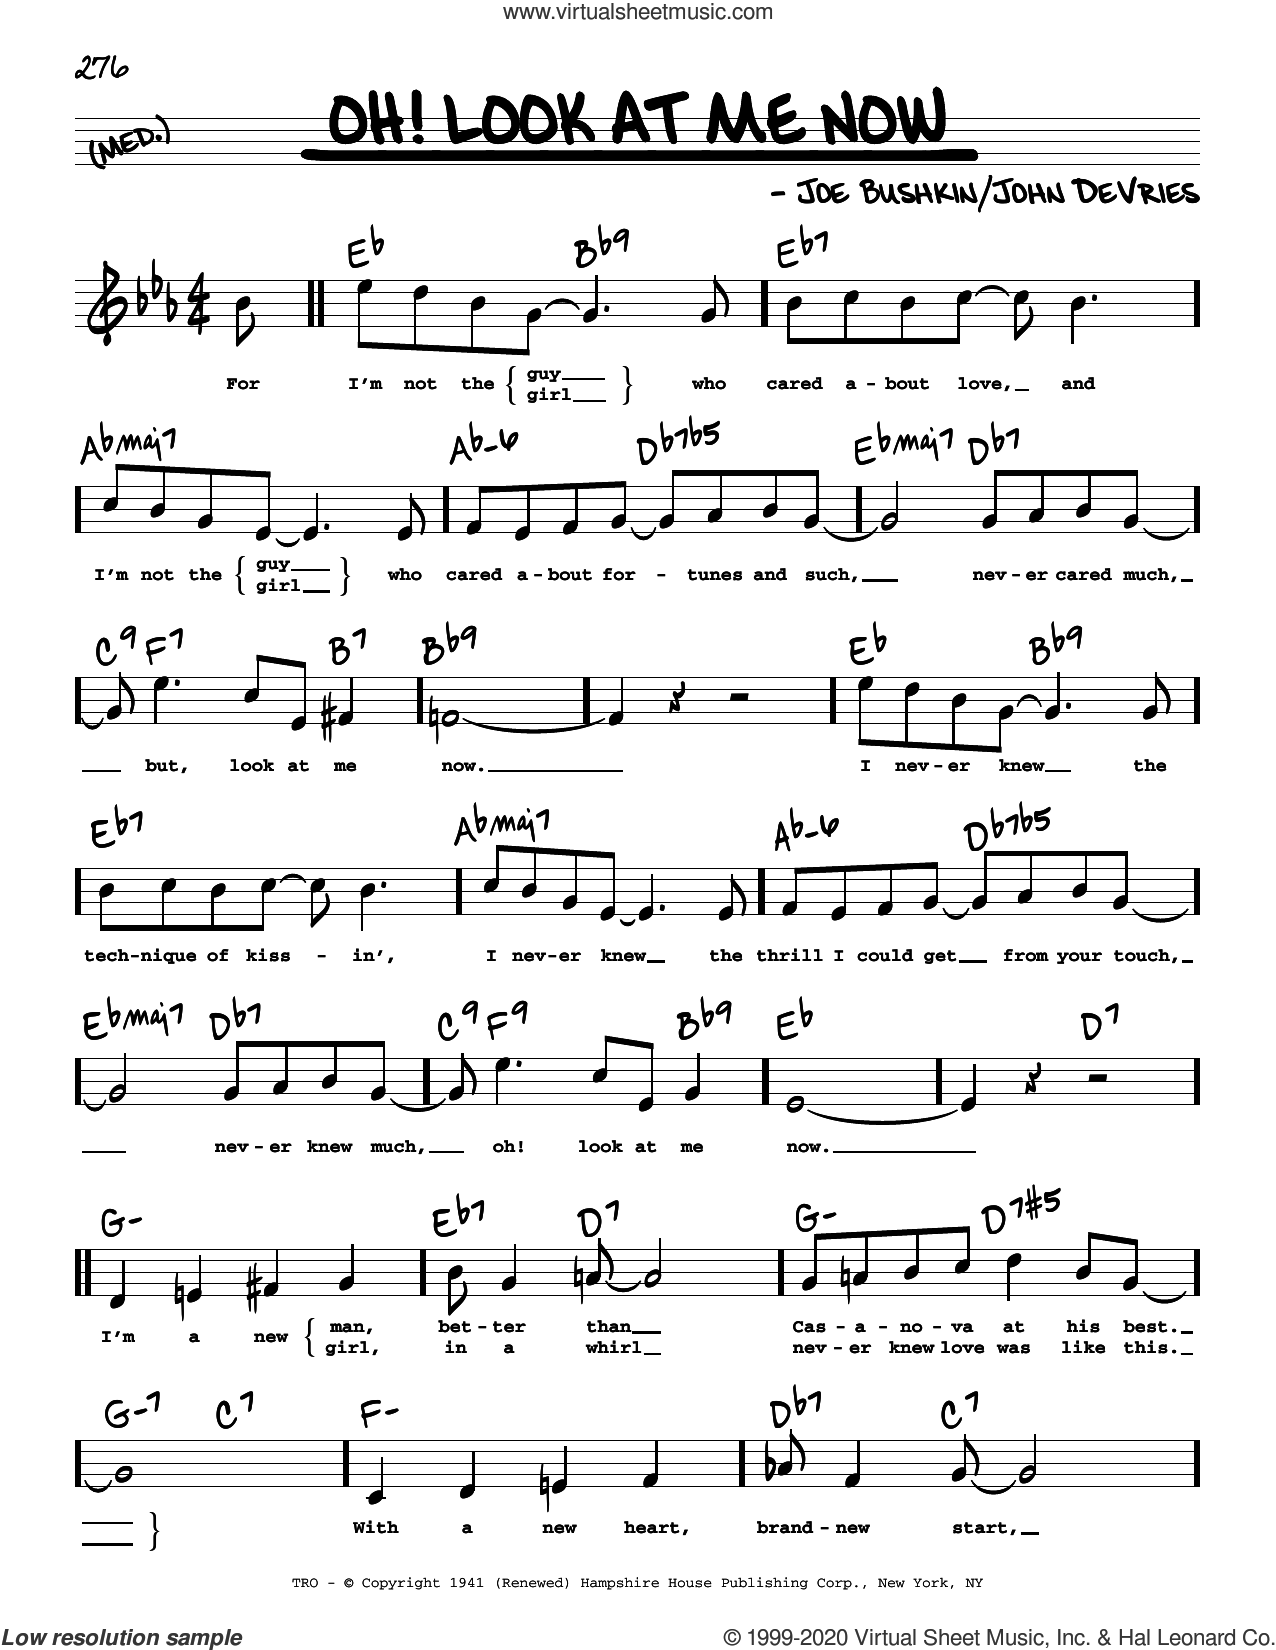 Oh! Look At Me Now (High Voice) sheet music for voice and other instruments (high voice) by John De Vries and Joe Bushkin, intermediate skill level